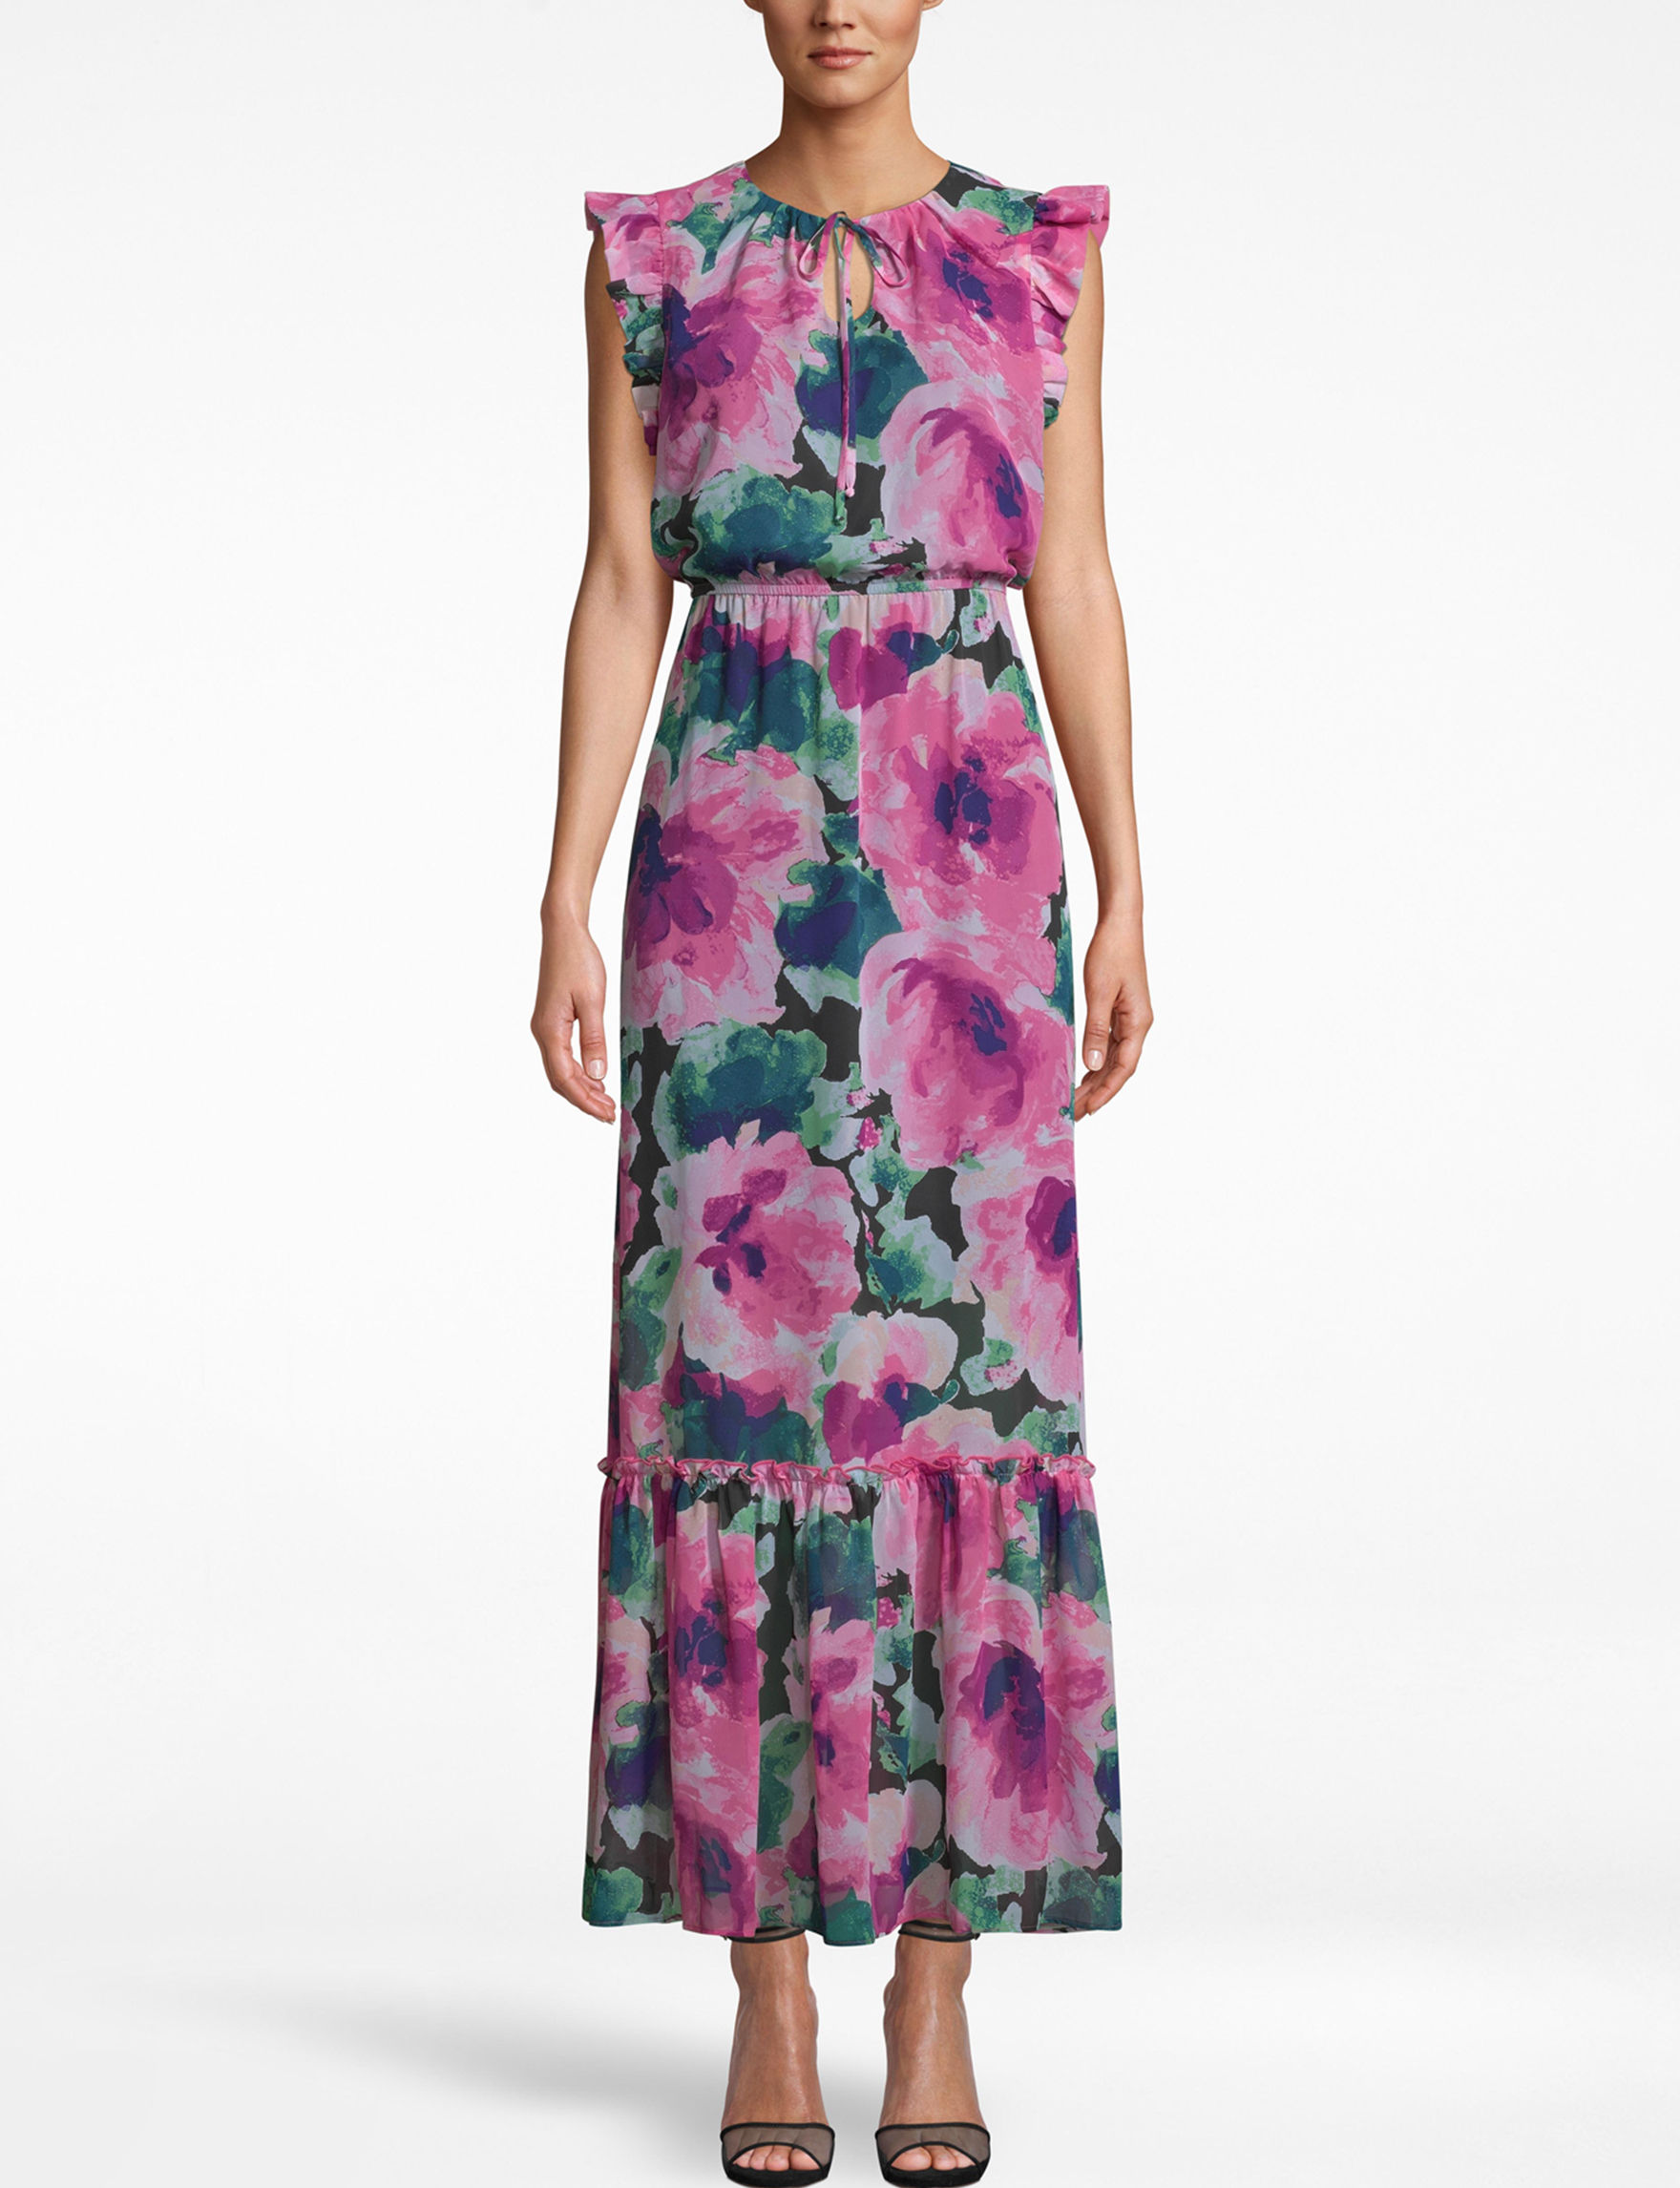 Nicole Miller Pink Multi Everyday & Casual Maxi Dresses